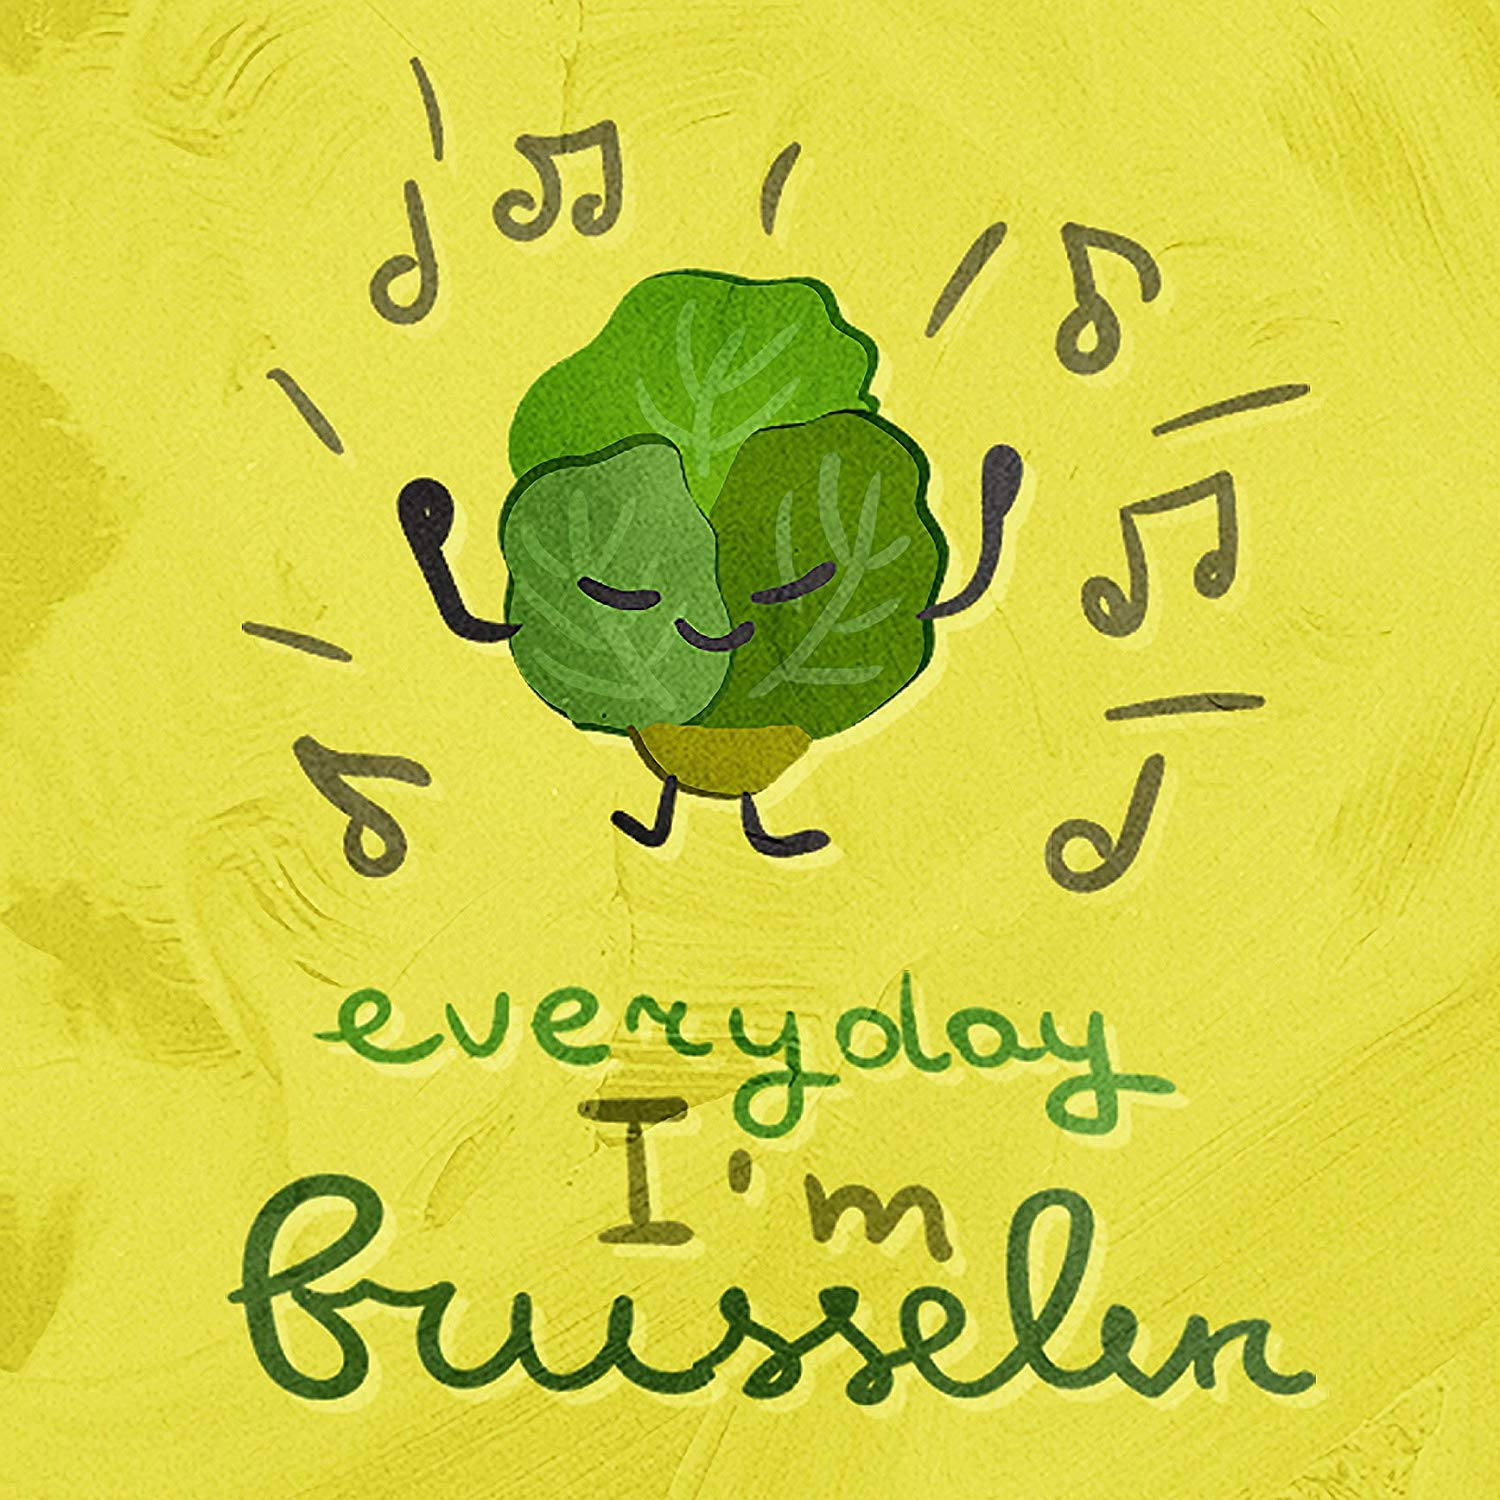 Wall Decor Sign Everyday I'm Brusselin Brussel Sprout Kitchen Pun Metal Tin Sign Post House Home Plaque